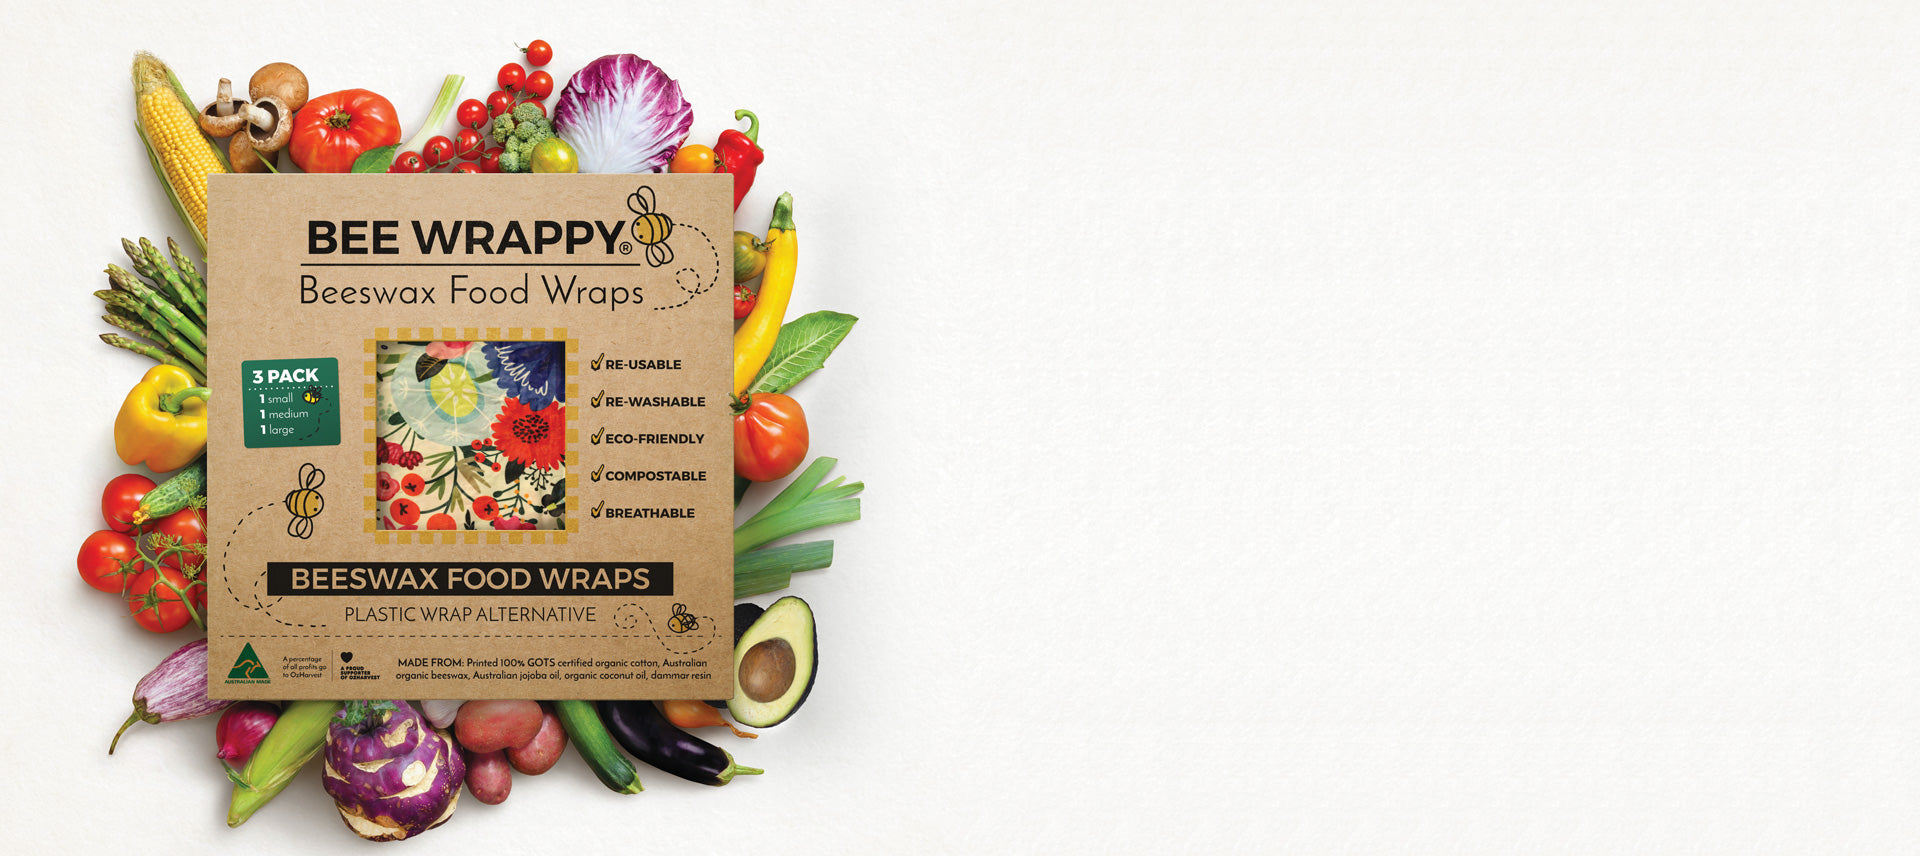 Beeswax Wraps by Bee Wrappy